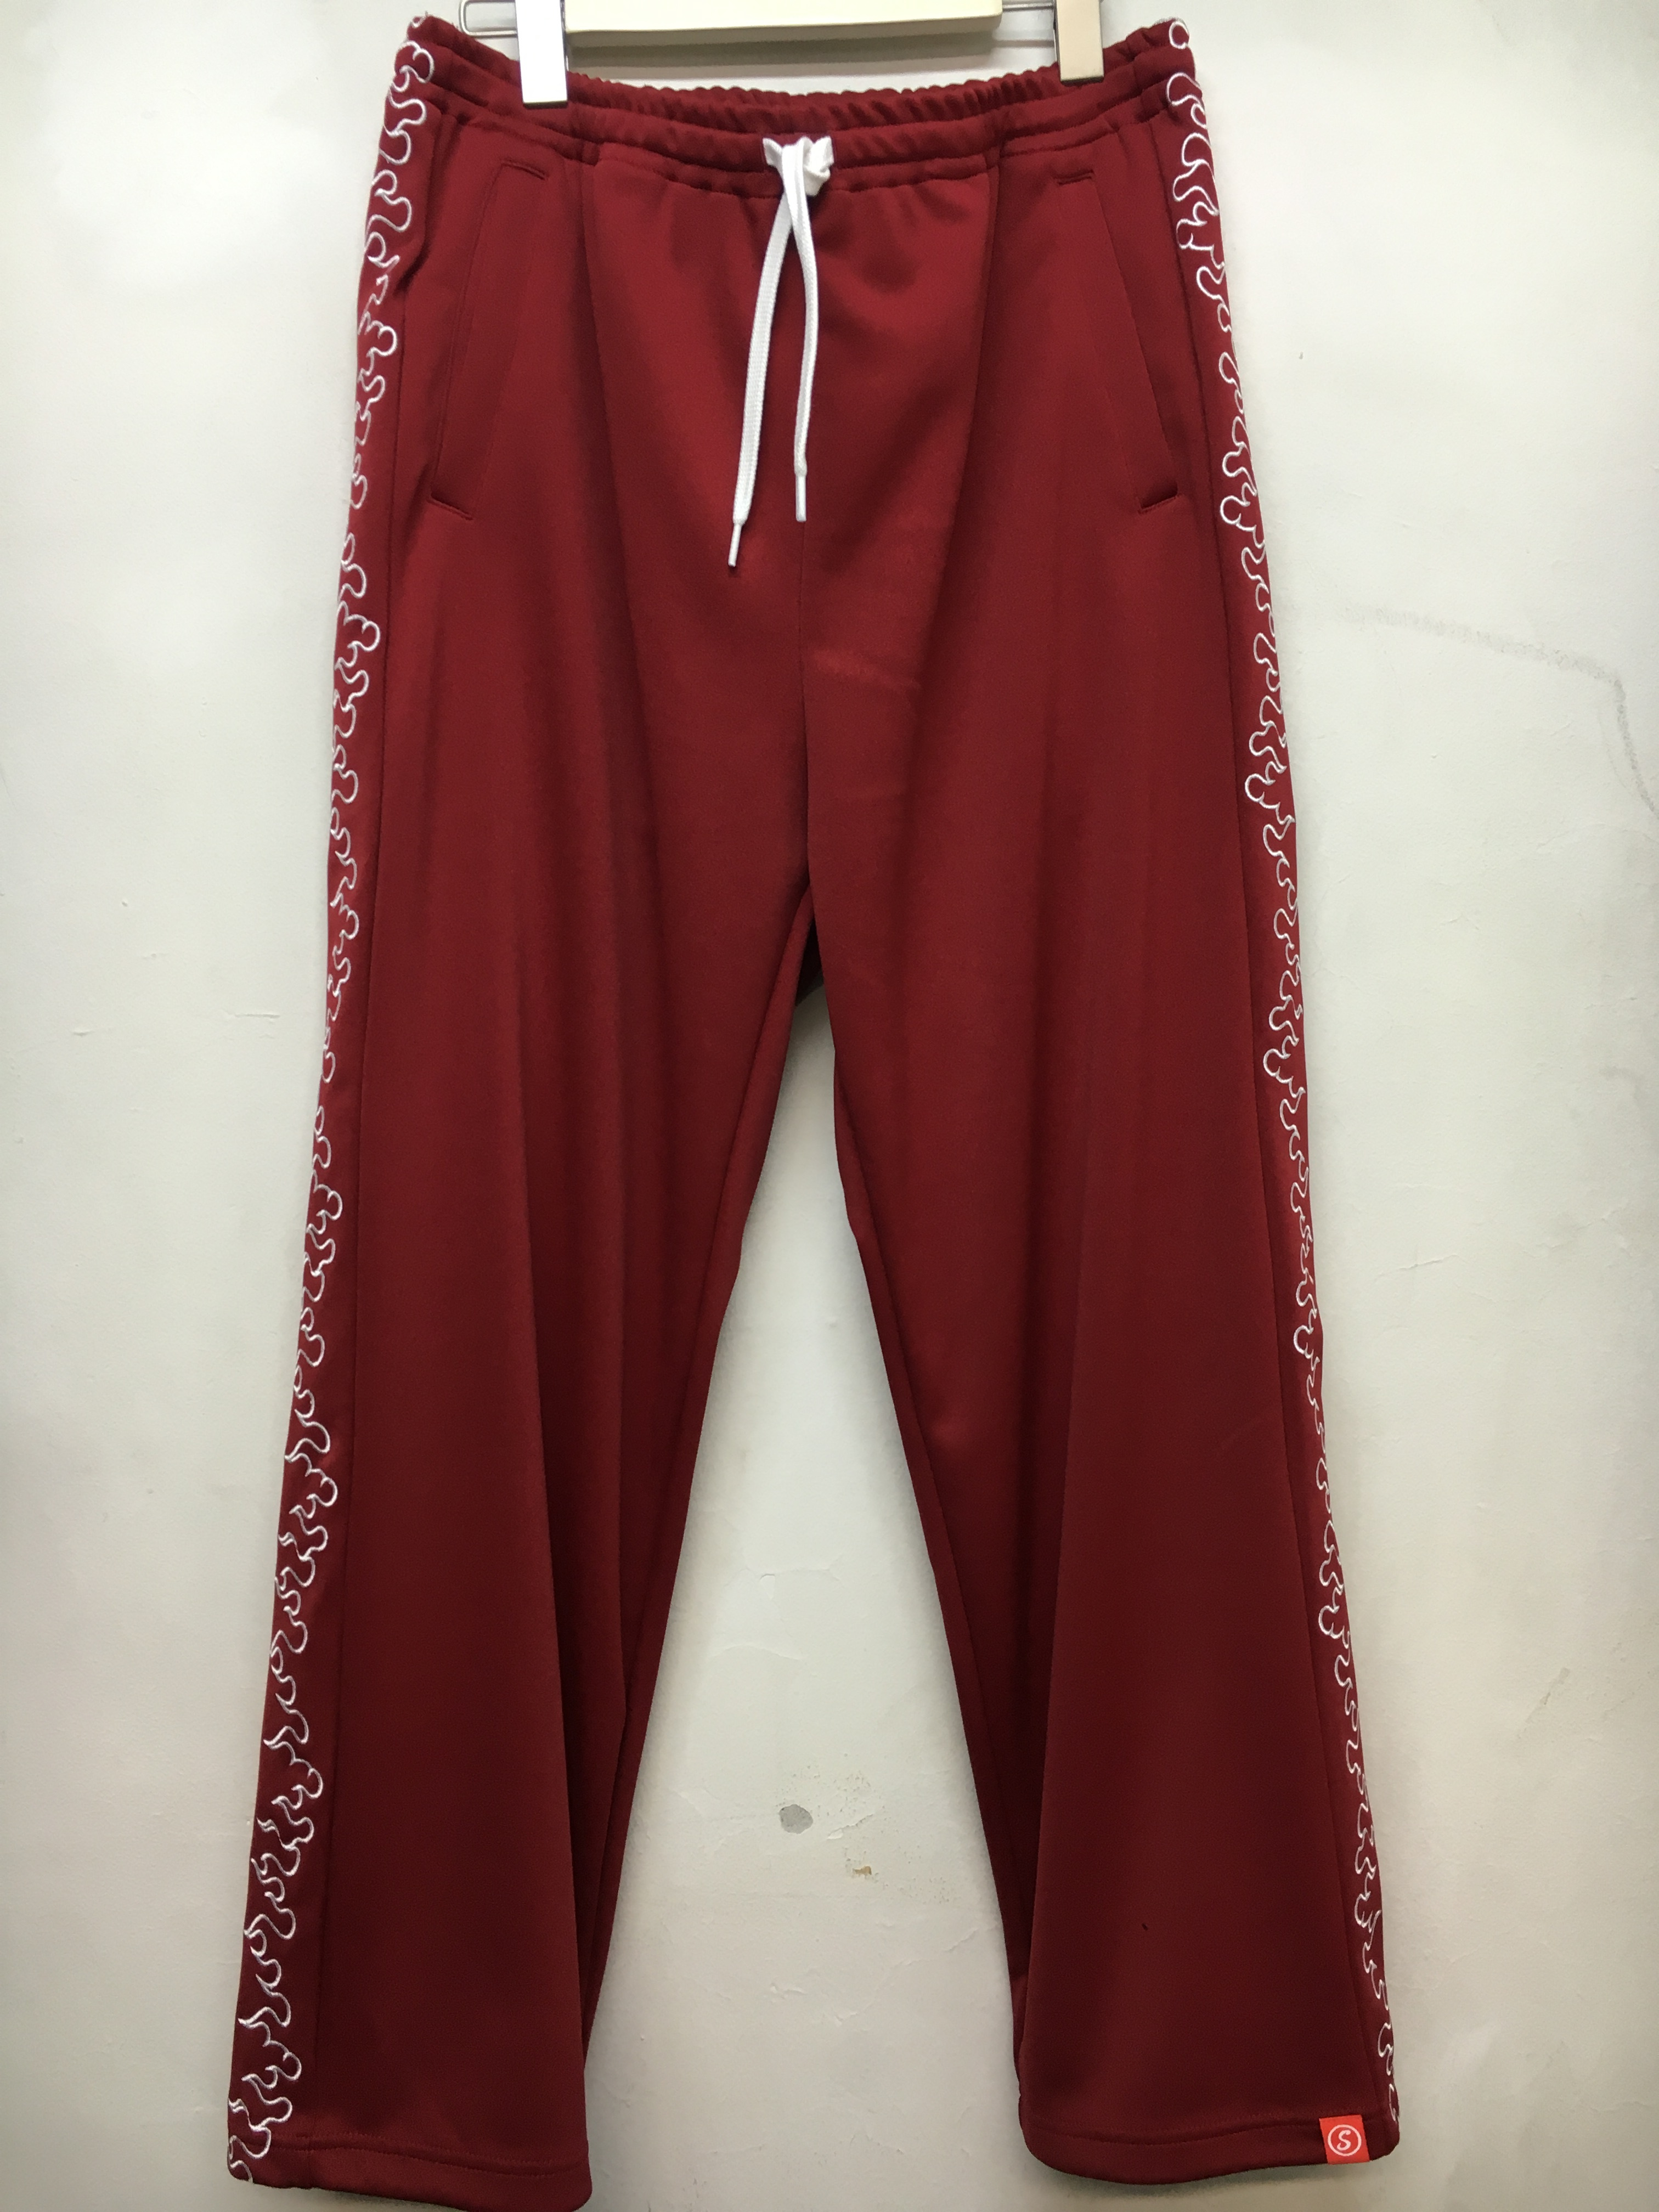 SKIN / FIRE TRACK PANTS -red - 画像1